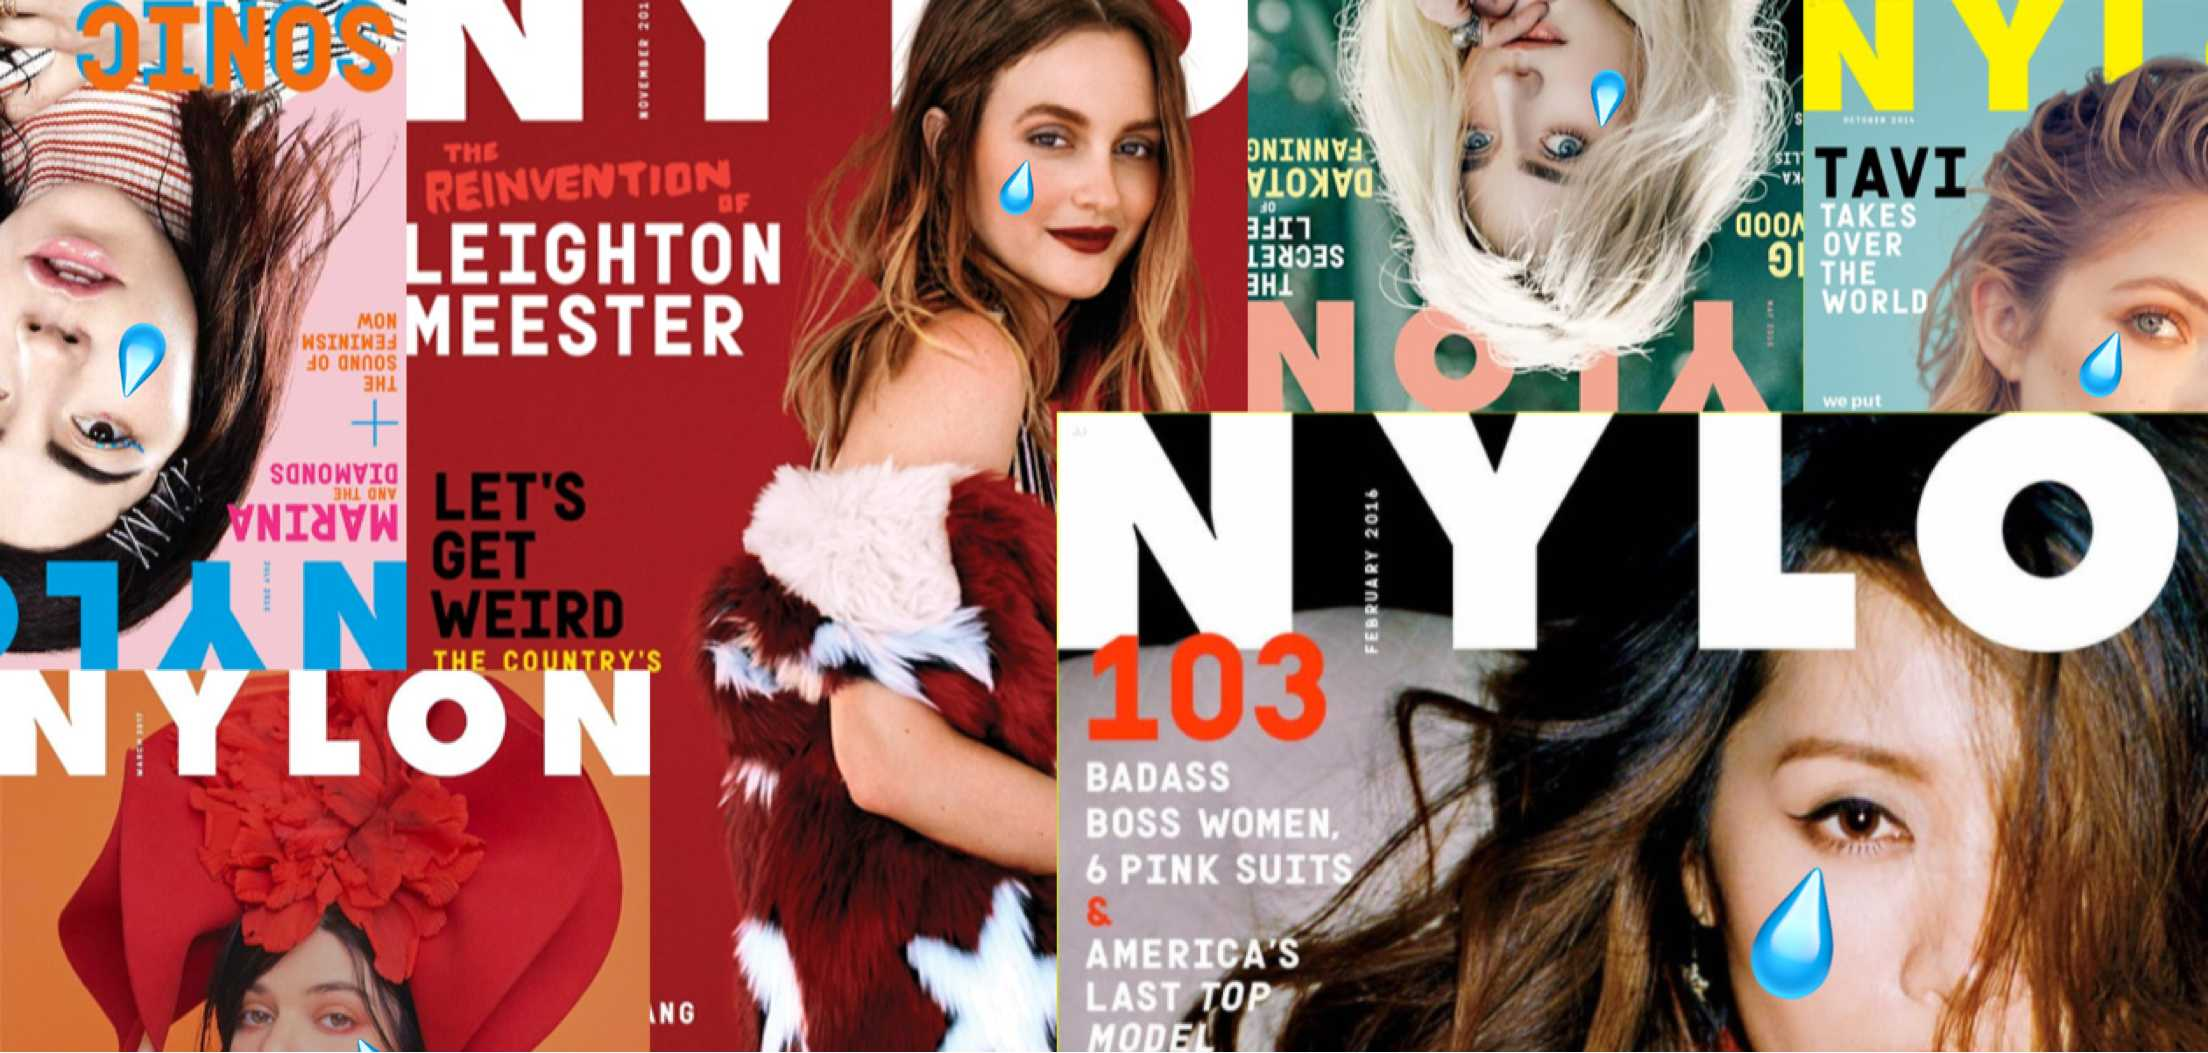 NYLON Goes Digital